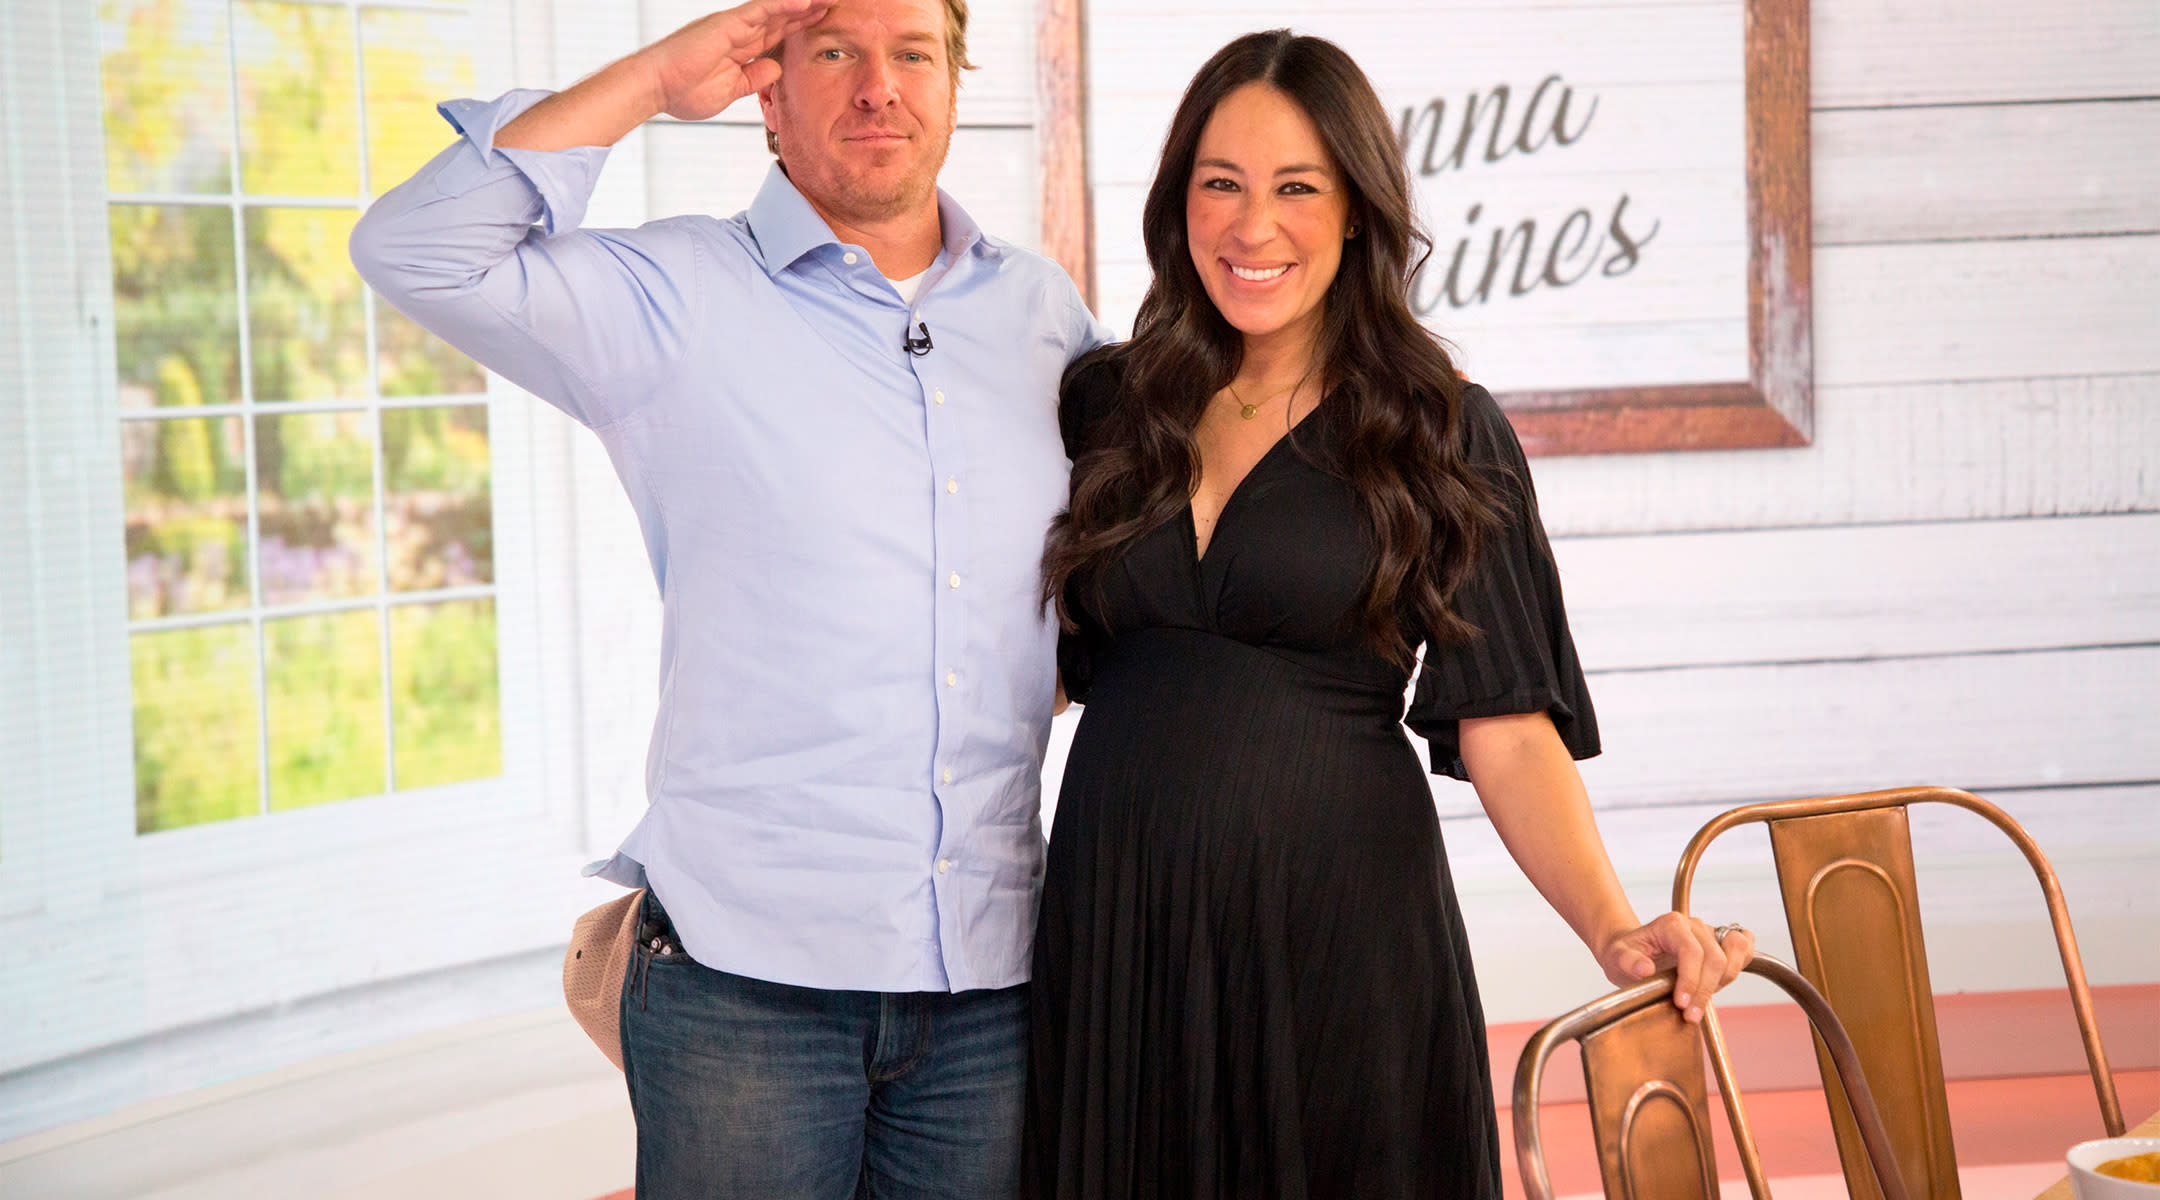 chip and joanna gaines of hgtv's fixer upper